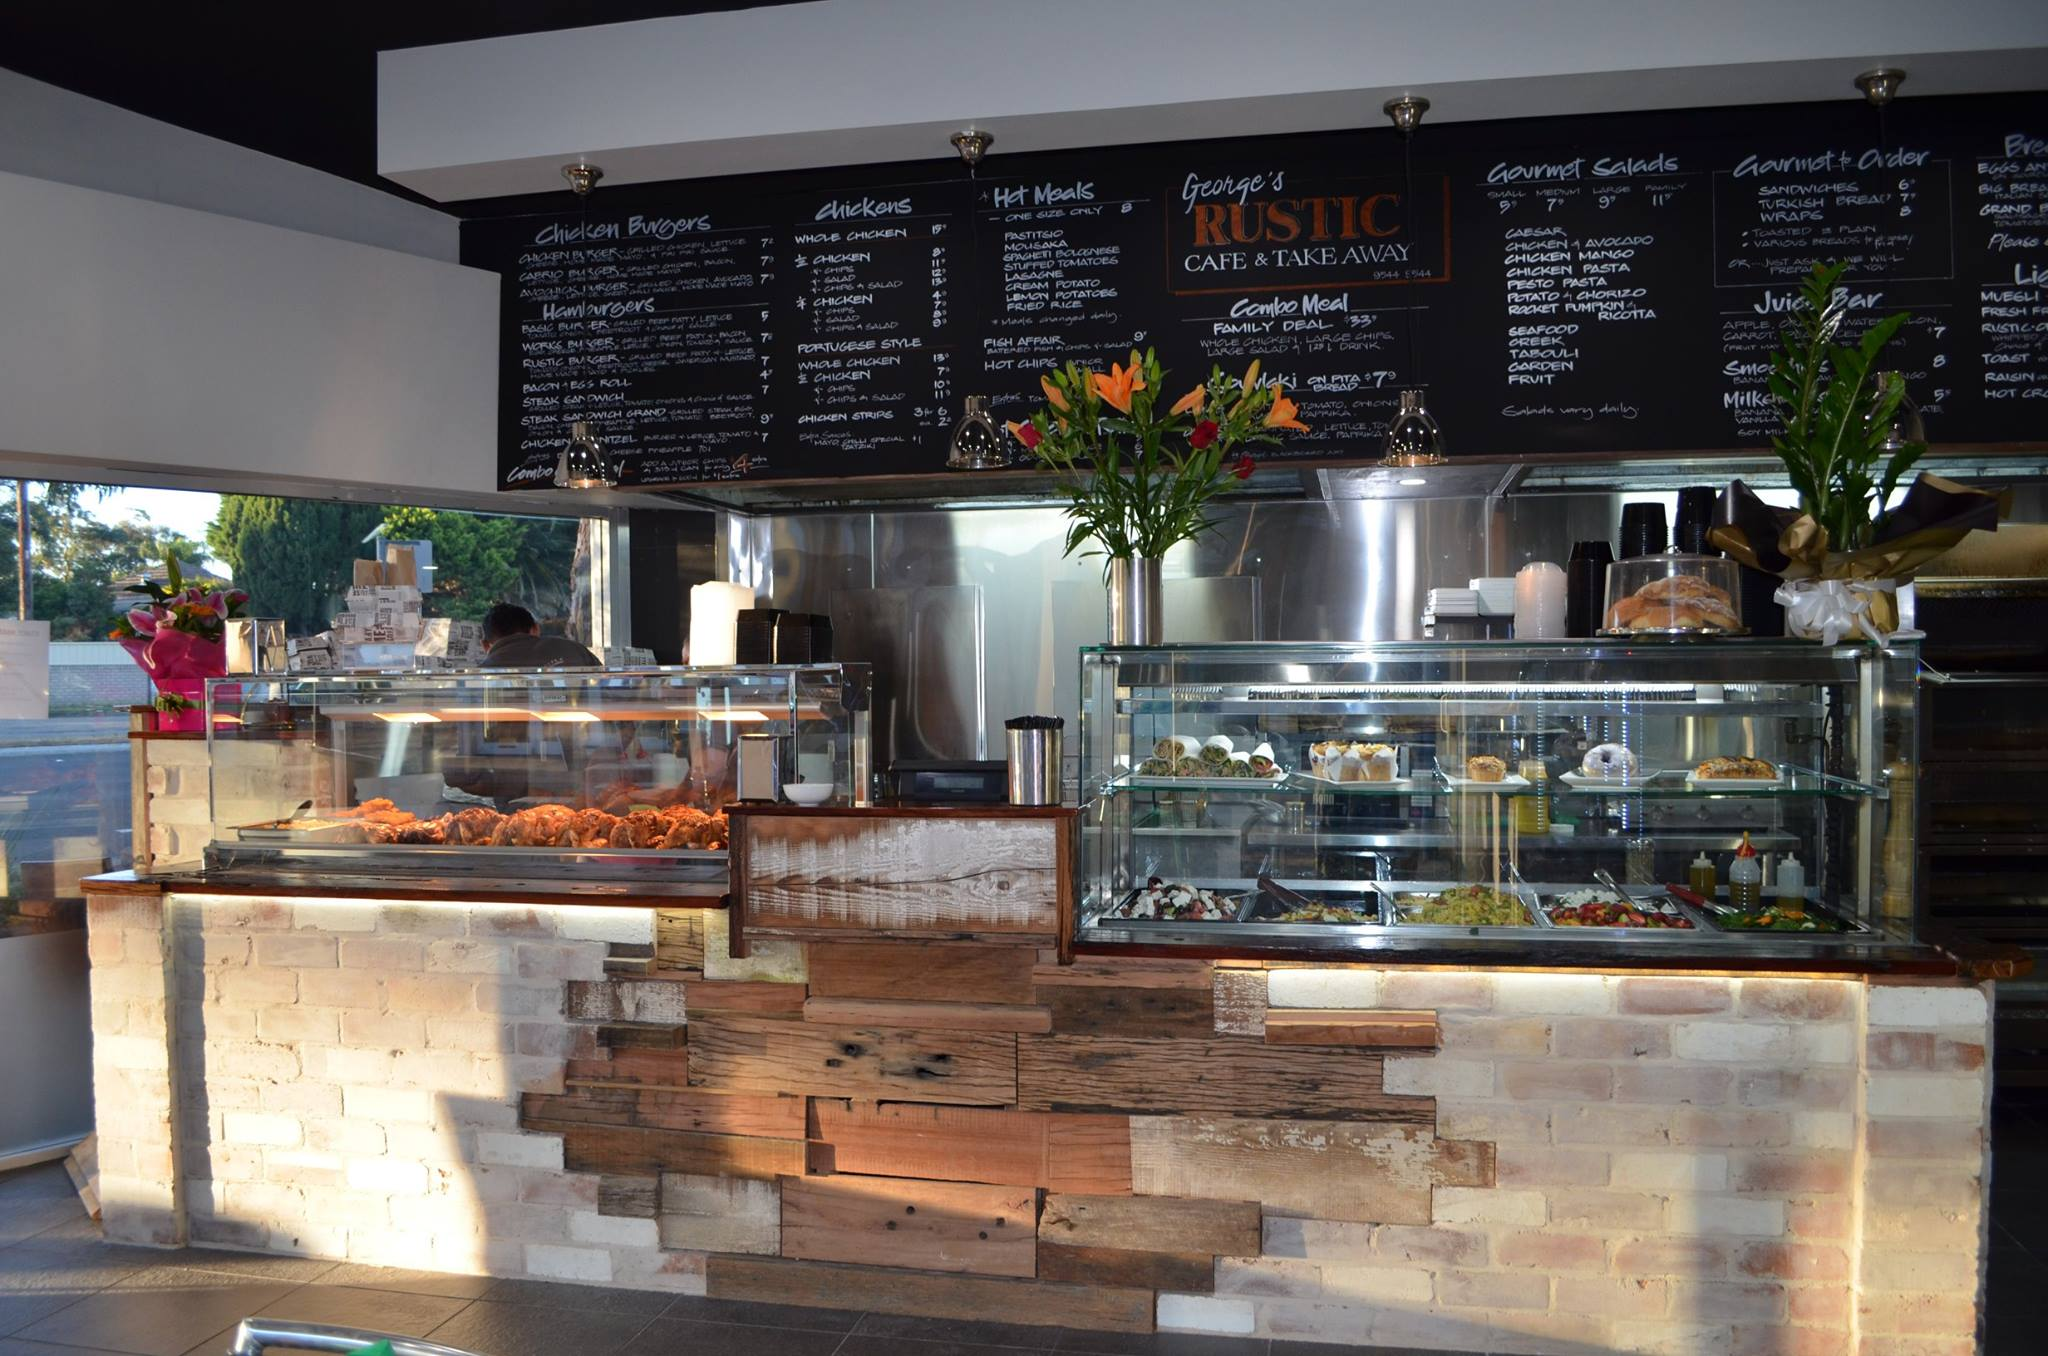 georges rustic cafe takeaway the australian local business awards